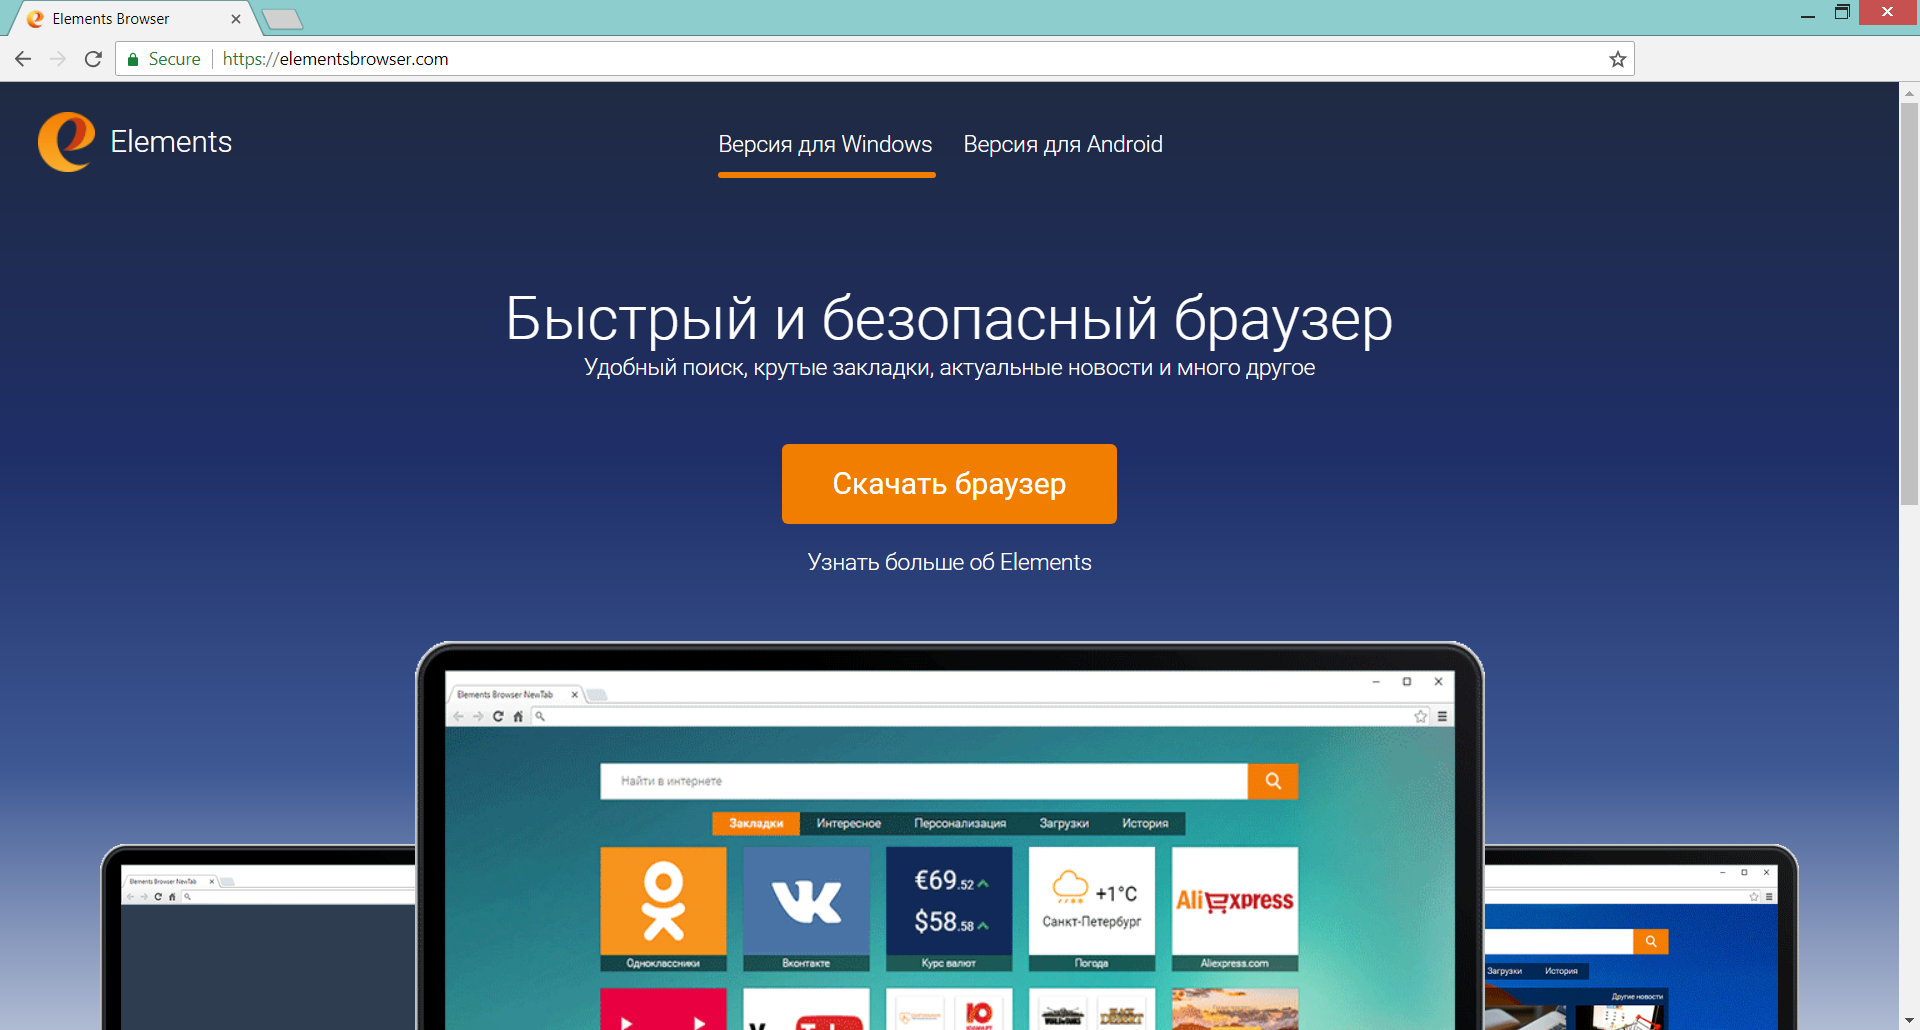 ElementsBrowser undesired app offered on its official website